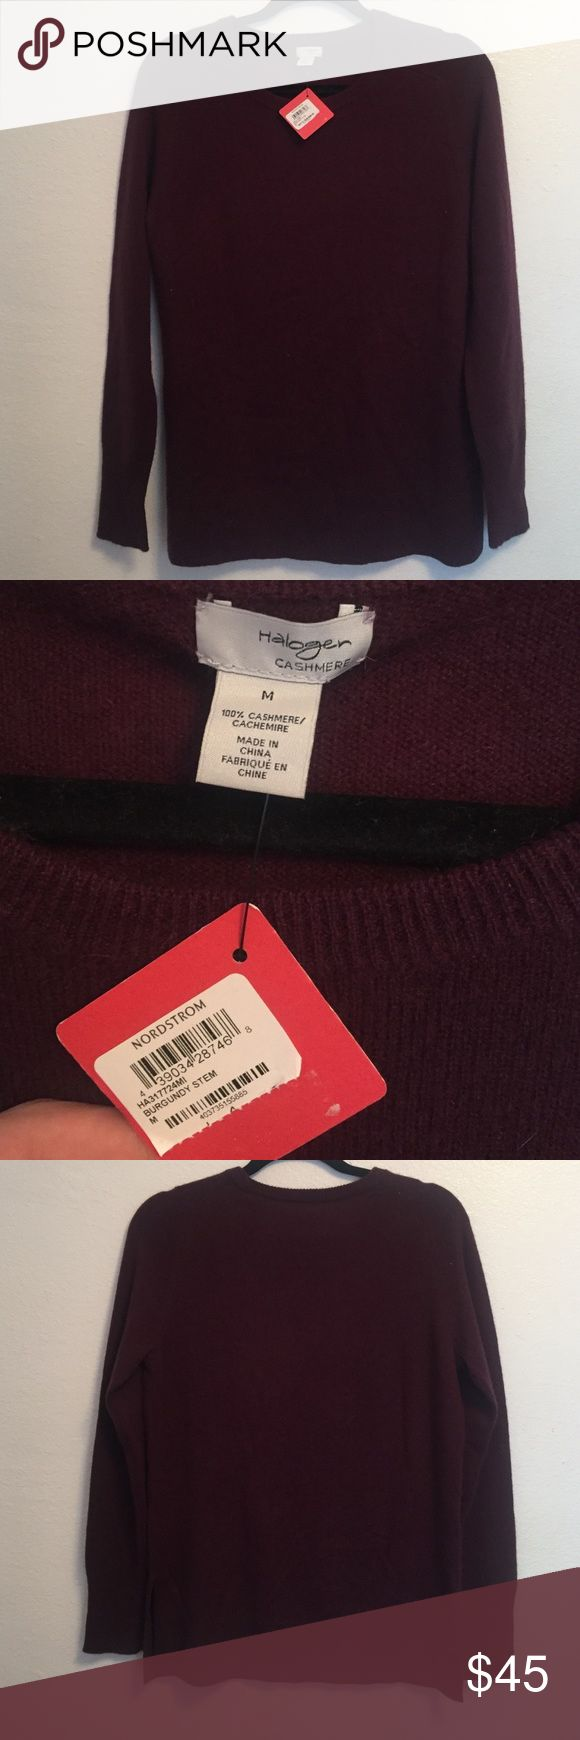 Women's HALOGEN Cashmere Sweater size M NWT In perfect mint new with tags condition! Beautiful burgundy women's Cashmere sweater.. HALOGEN label from Nordstrom Halogen Sweaters Crew & Scoop Necks